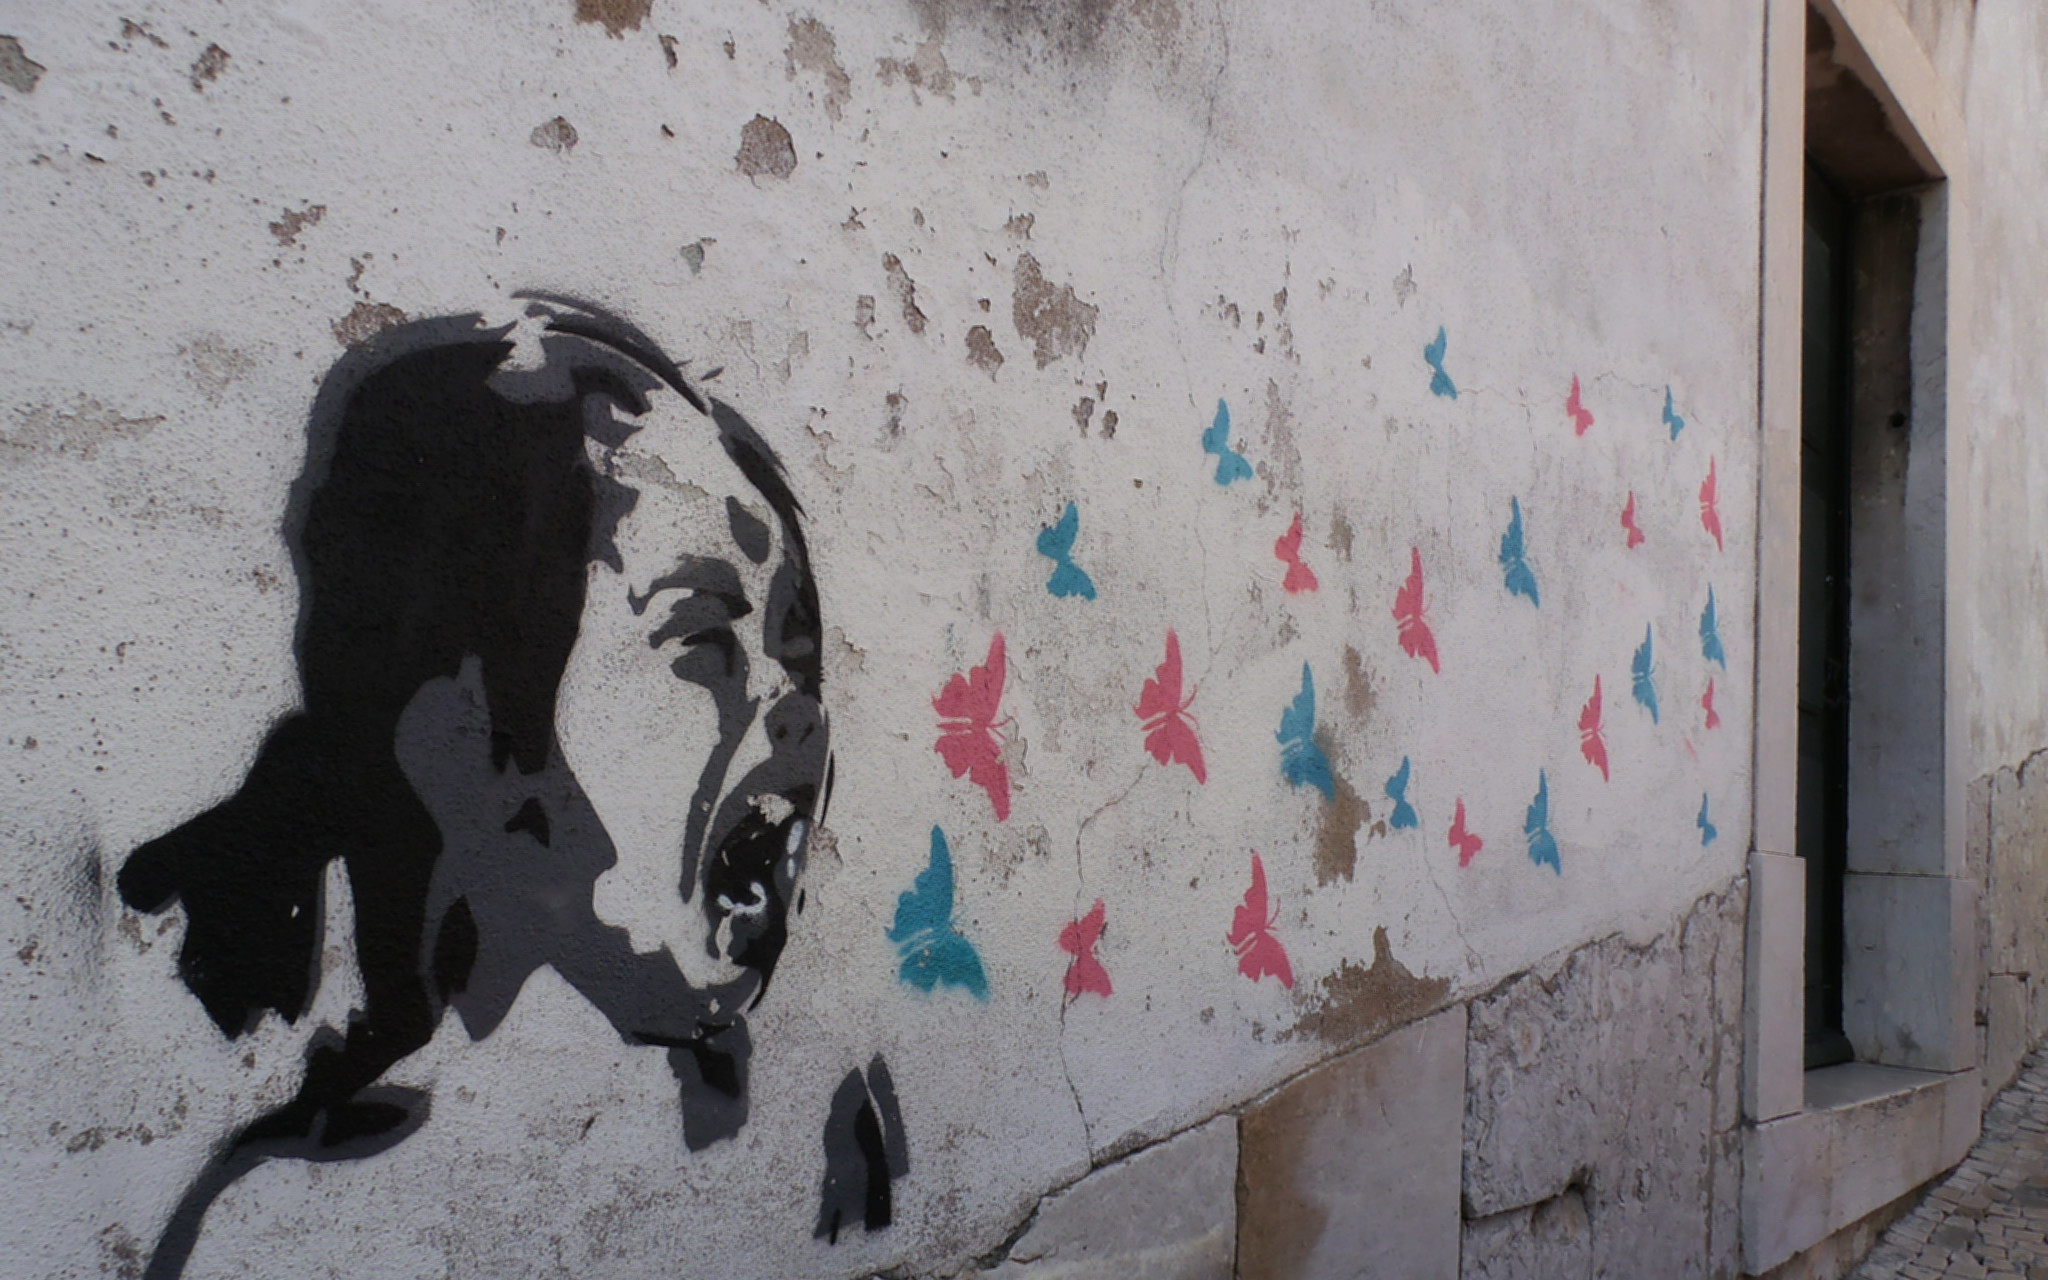 A photo of street art where a young girl screams and blue and pink butterflies flutter out of her mouth